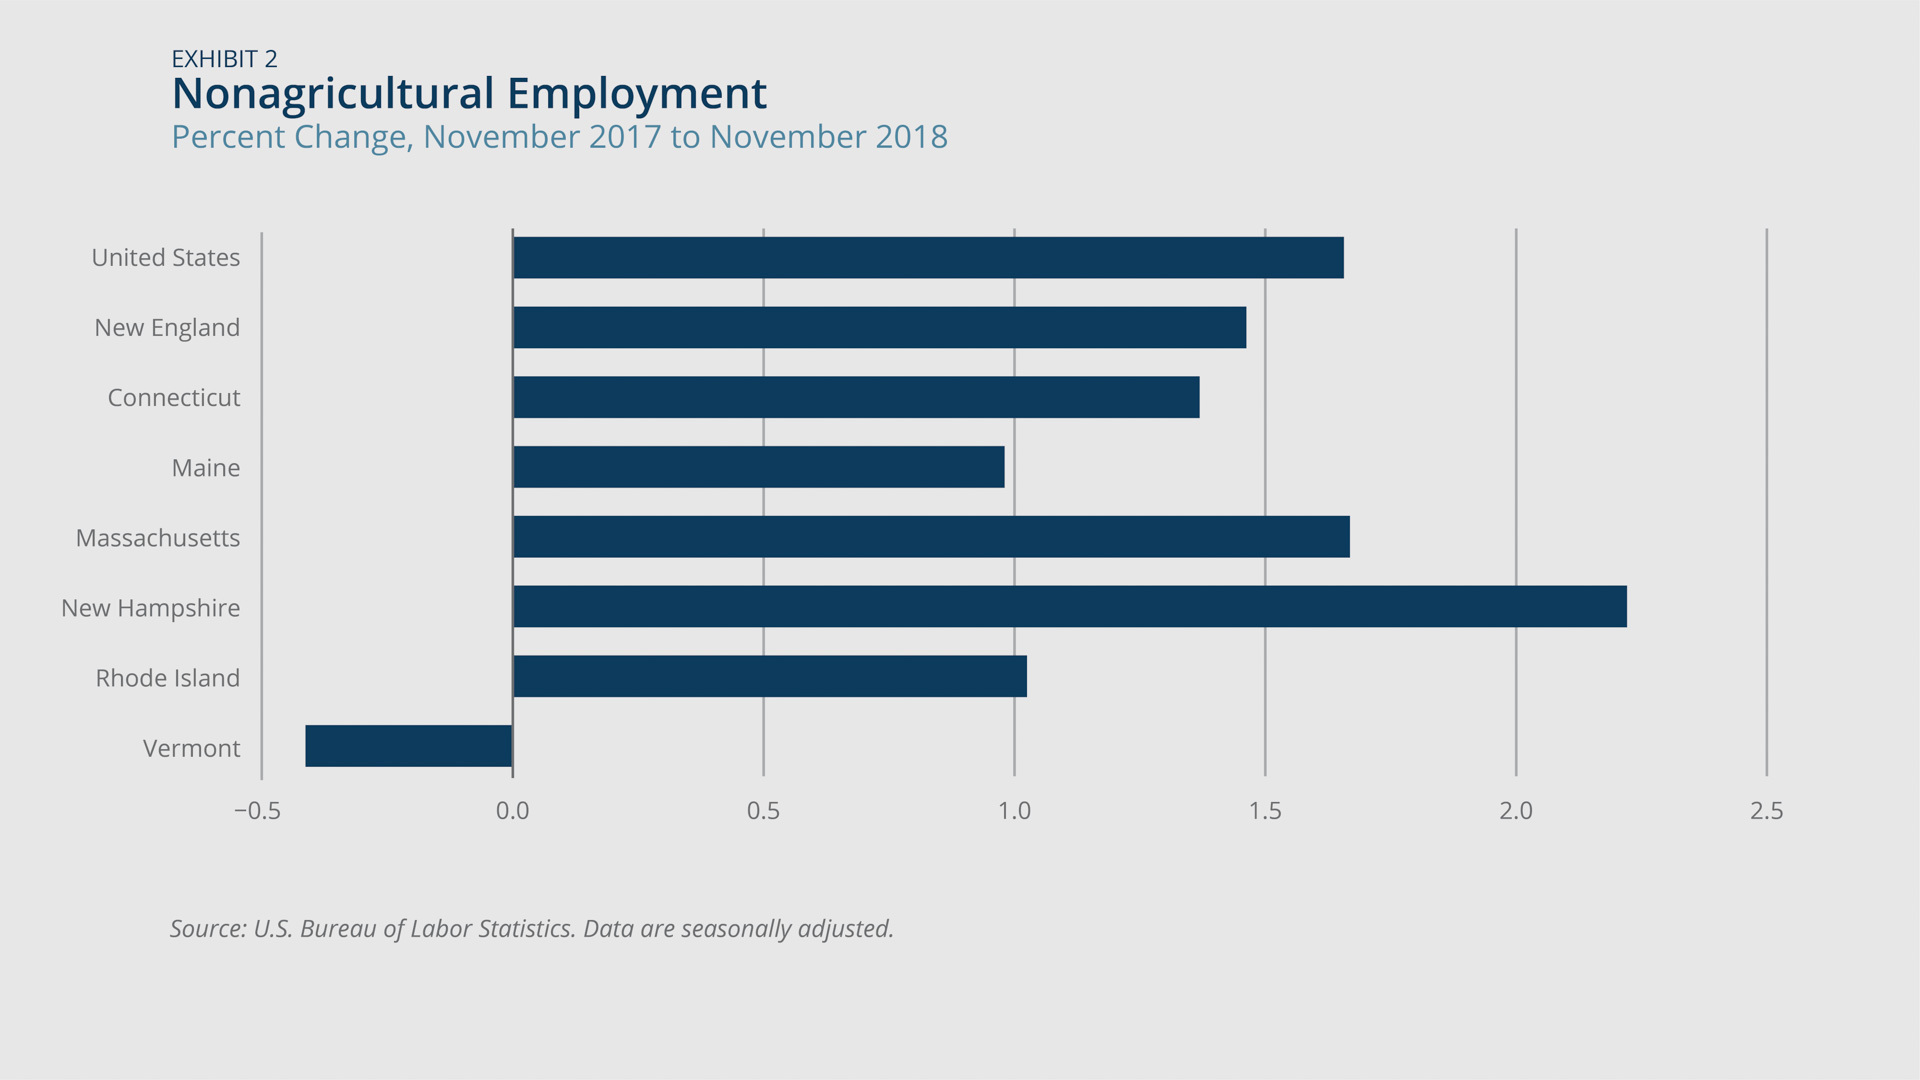 Nonagricultural employment changes in New England states